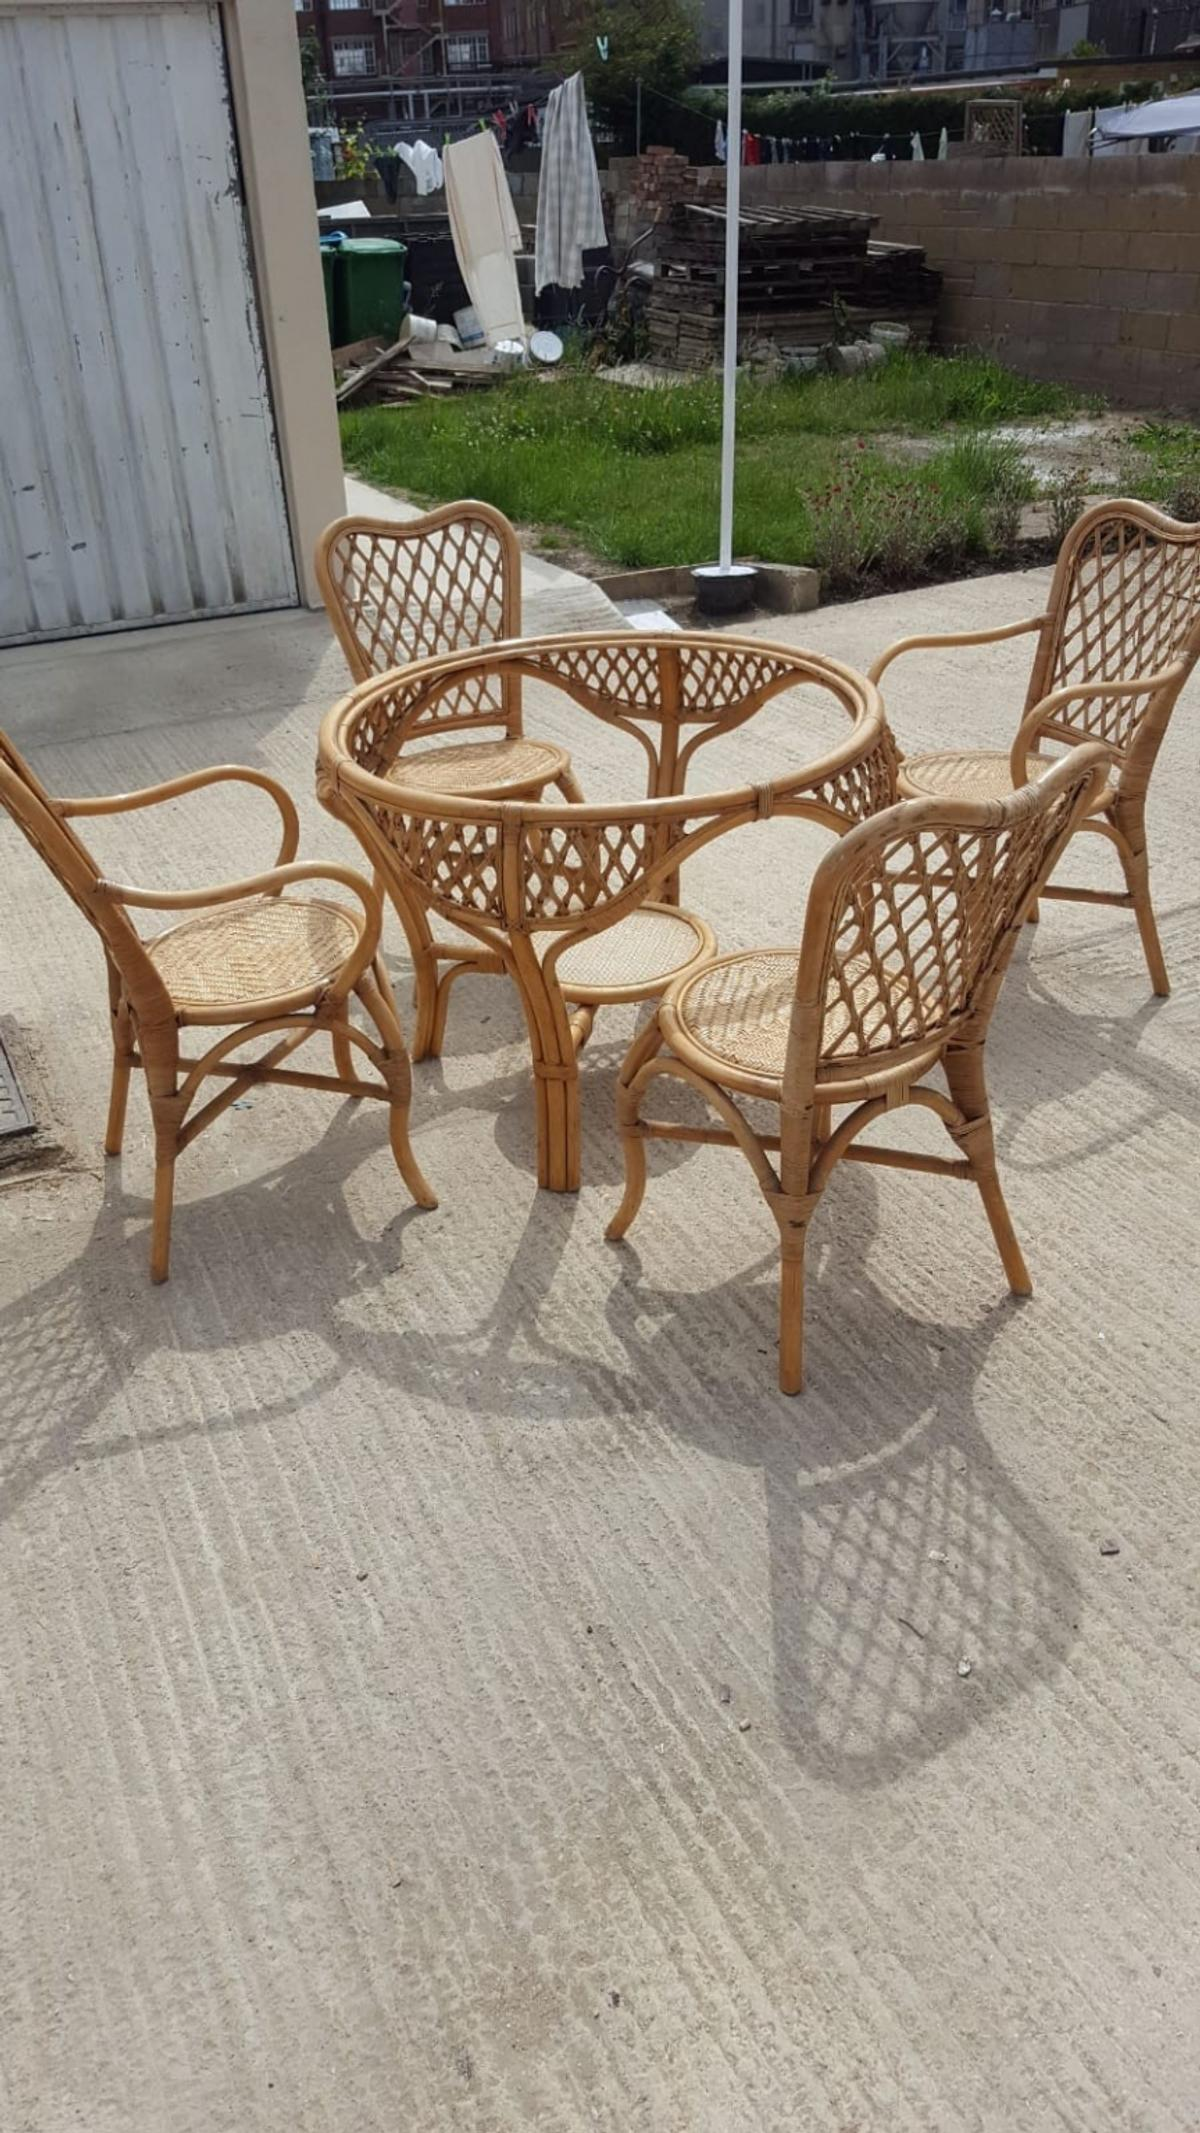 Picture of: Bamboo Dining Set In Sl1 Slough For 50 00 For Sale Shpock